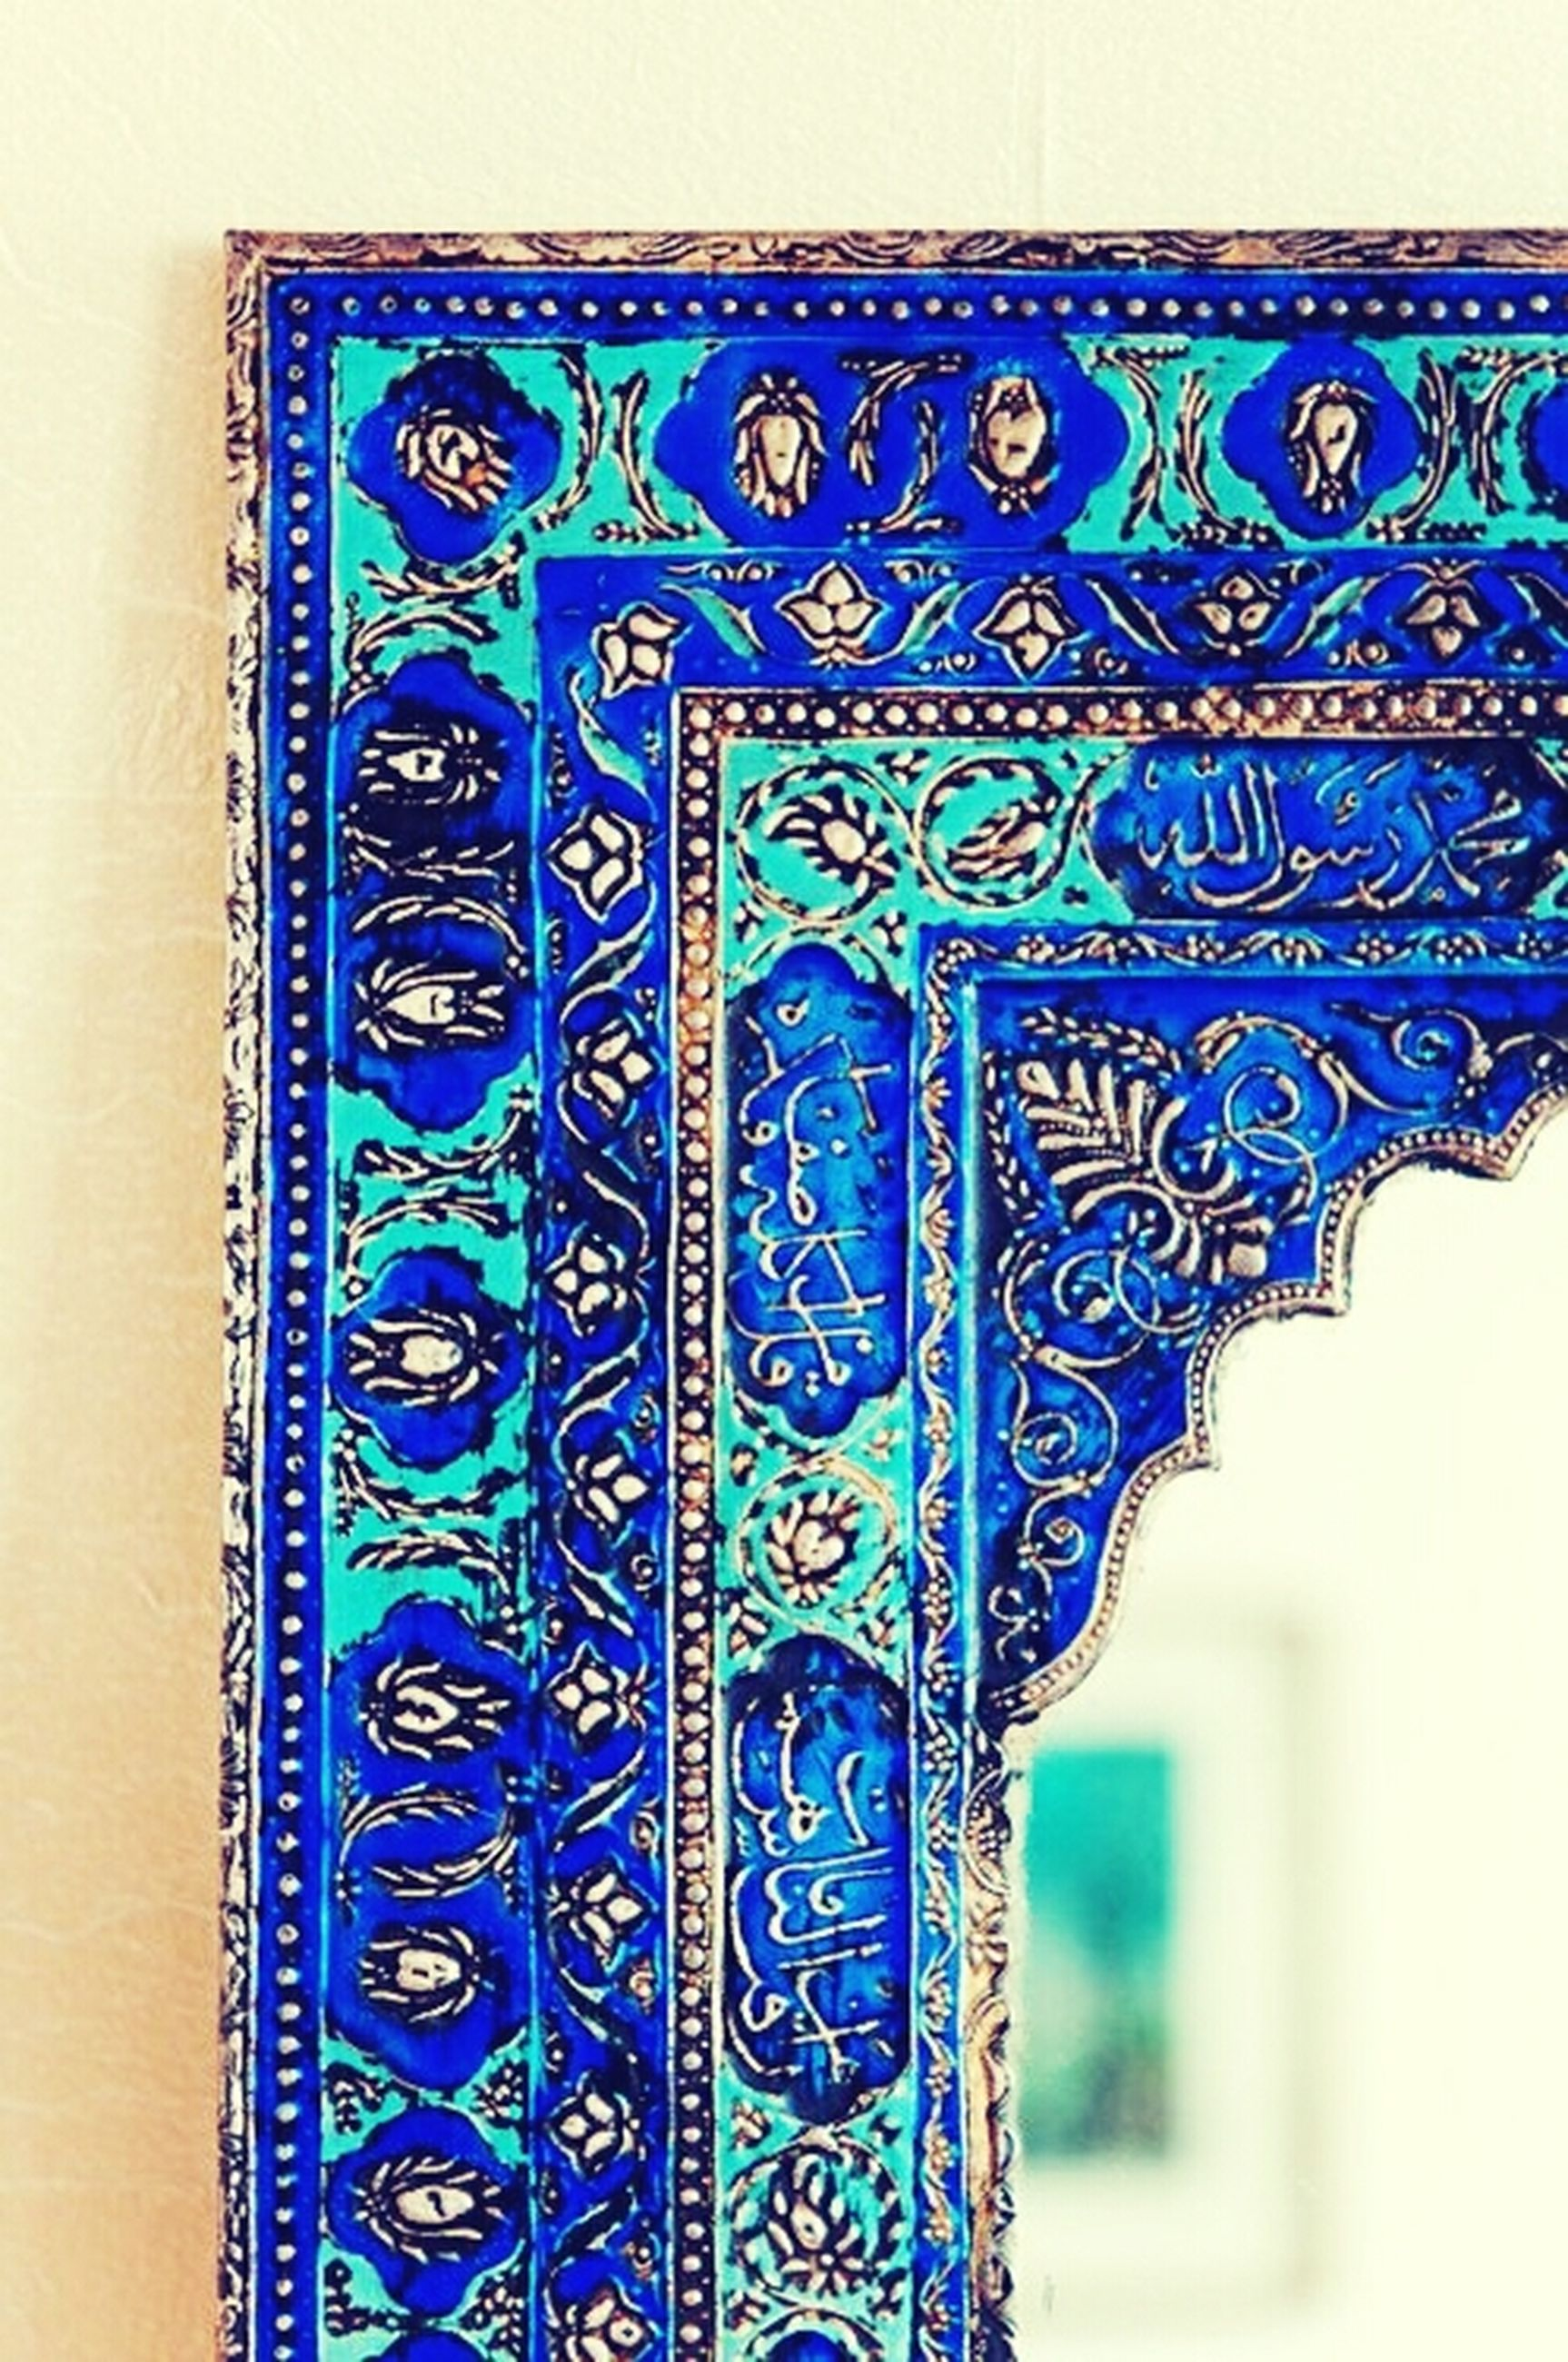 multi colored, design, pattern, indoors, art and craft, art, creativity, close-up, architecture, floral pattern, blue, built structure, ornate, wall - building feature, part of, decoration, textile, colorful, fabric, textured